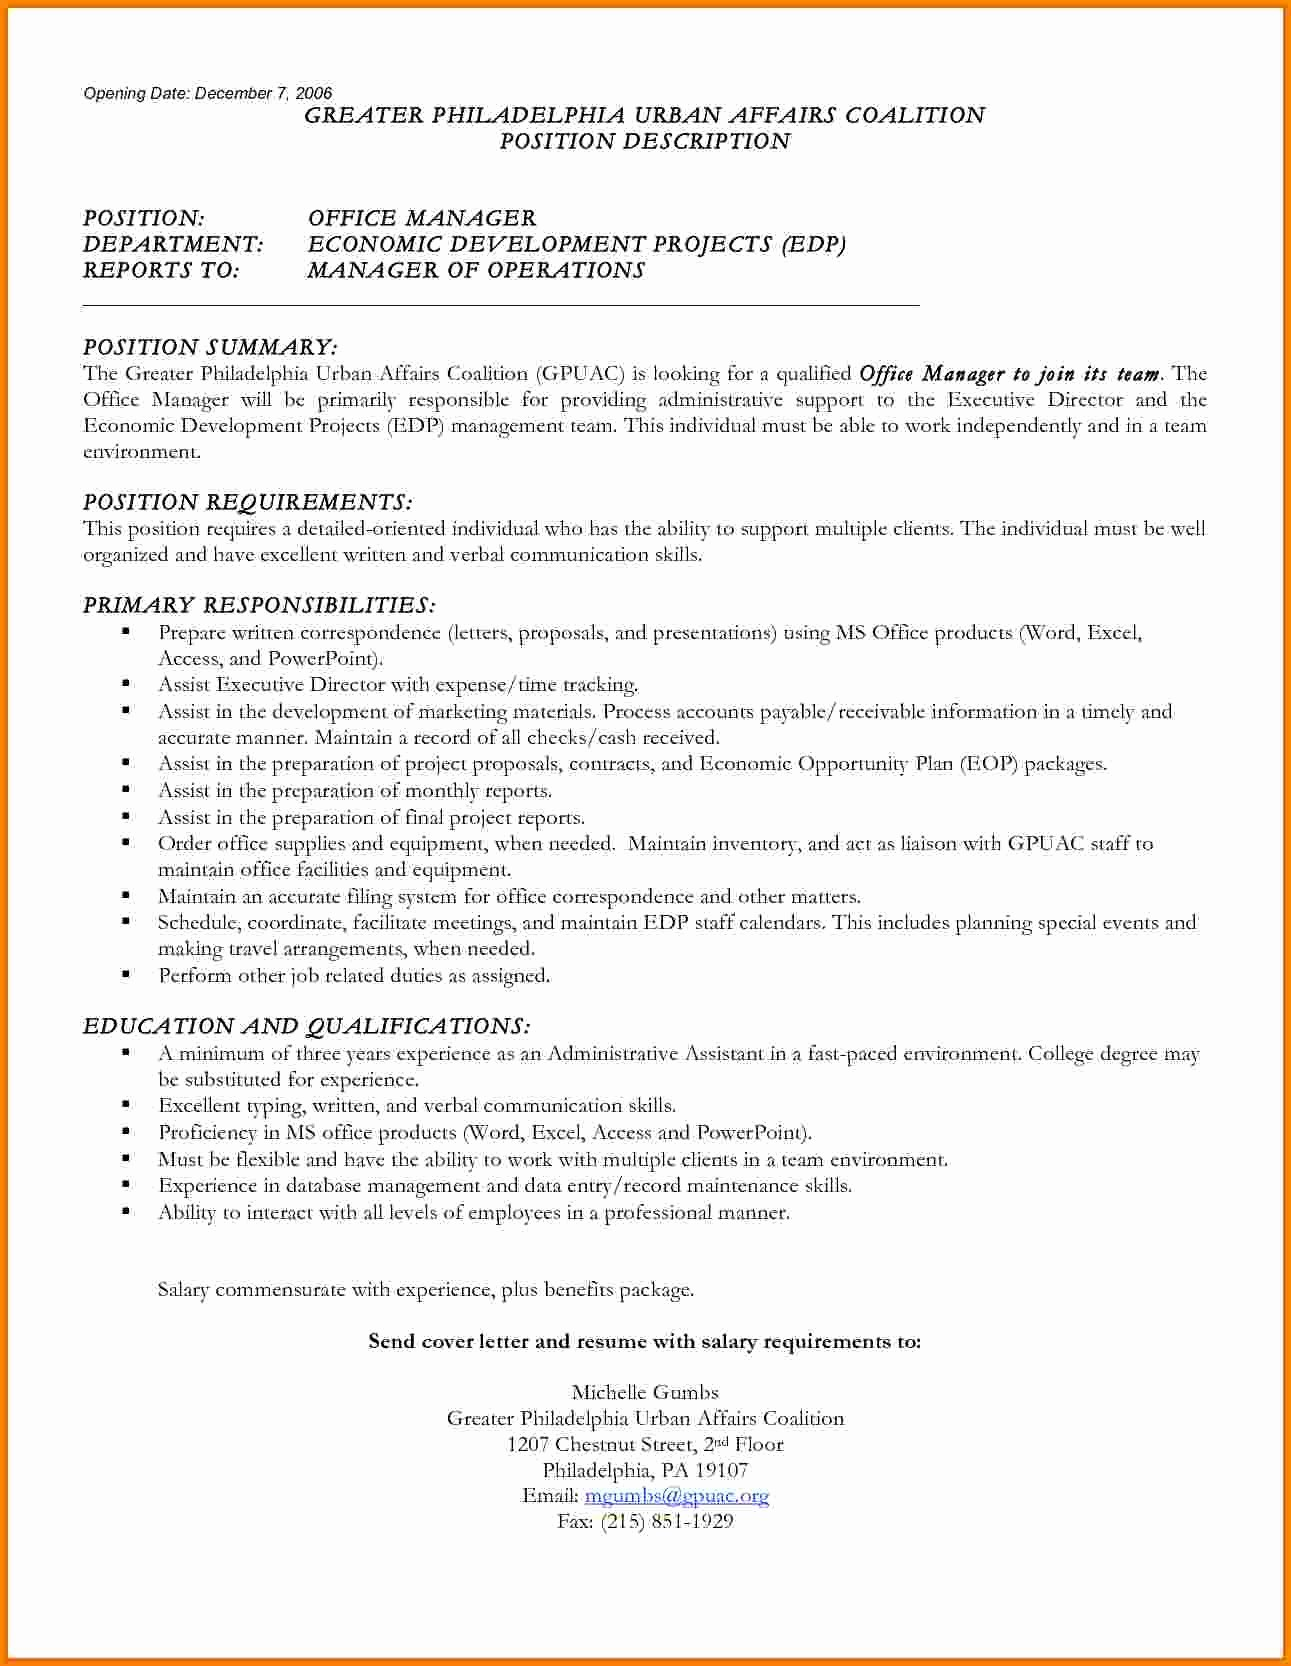 Salary History In Cover Letter Inspirational 3 On Resume